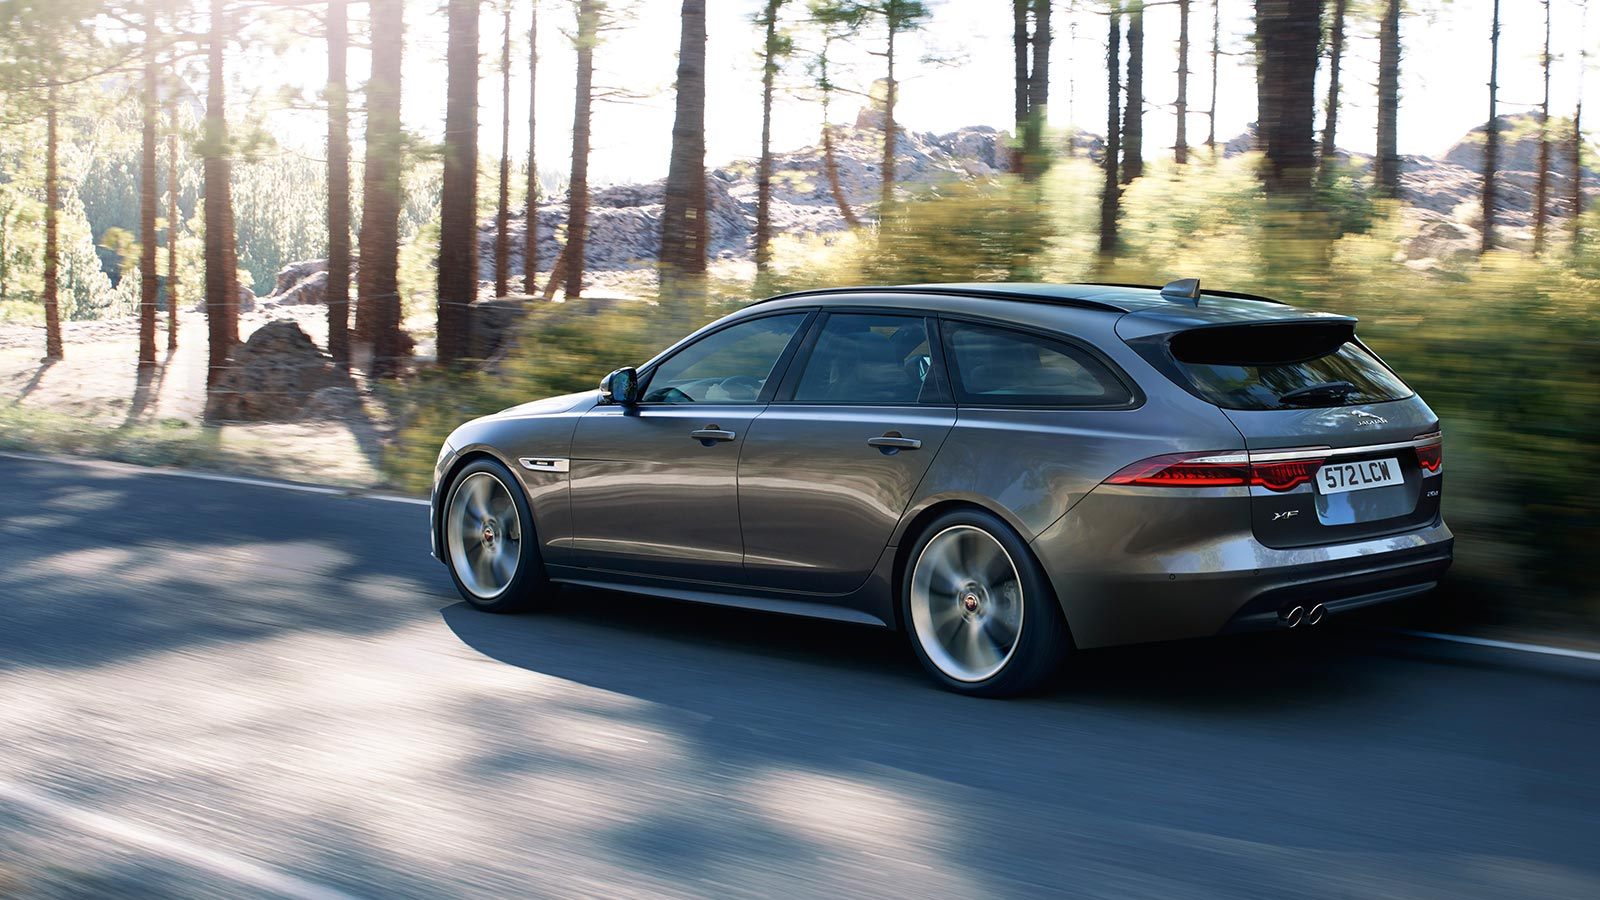 Grey Jaguar XF Driving By Trees.